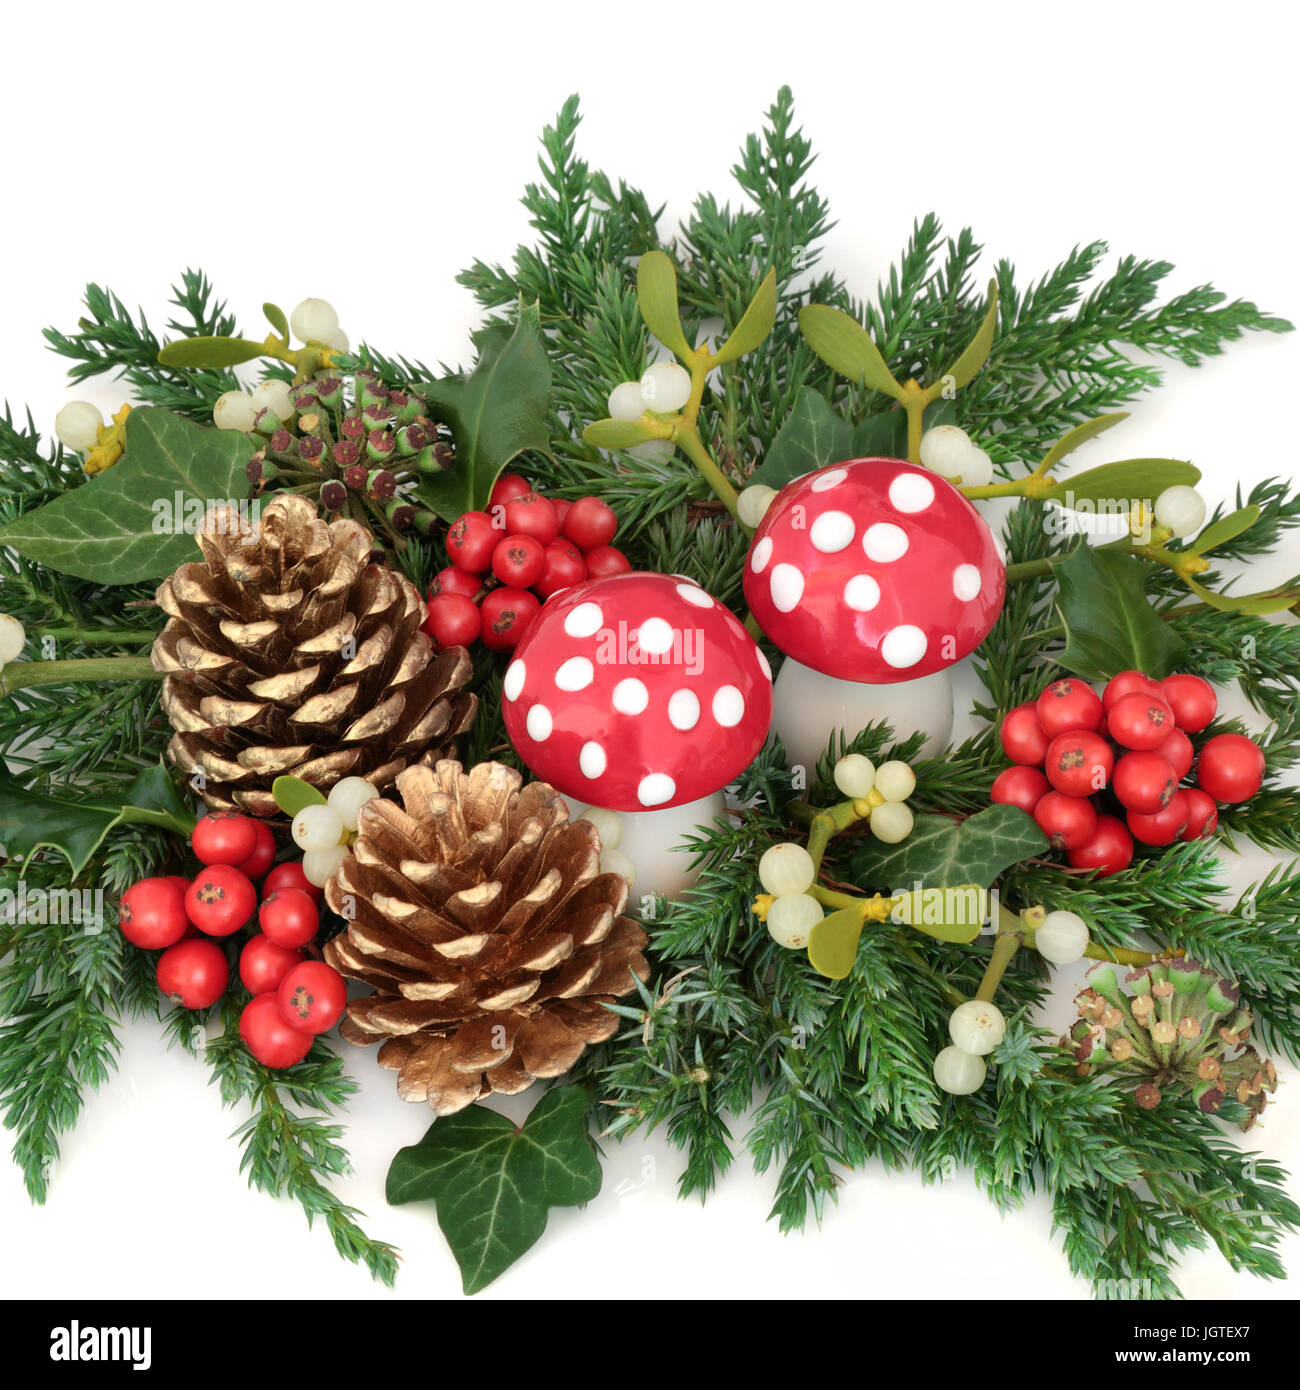 christmas decoration with holly fly agaric mushroom ornaments gold pine cones mistletoe and - Mistletoe Christmas Decoration